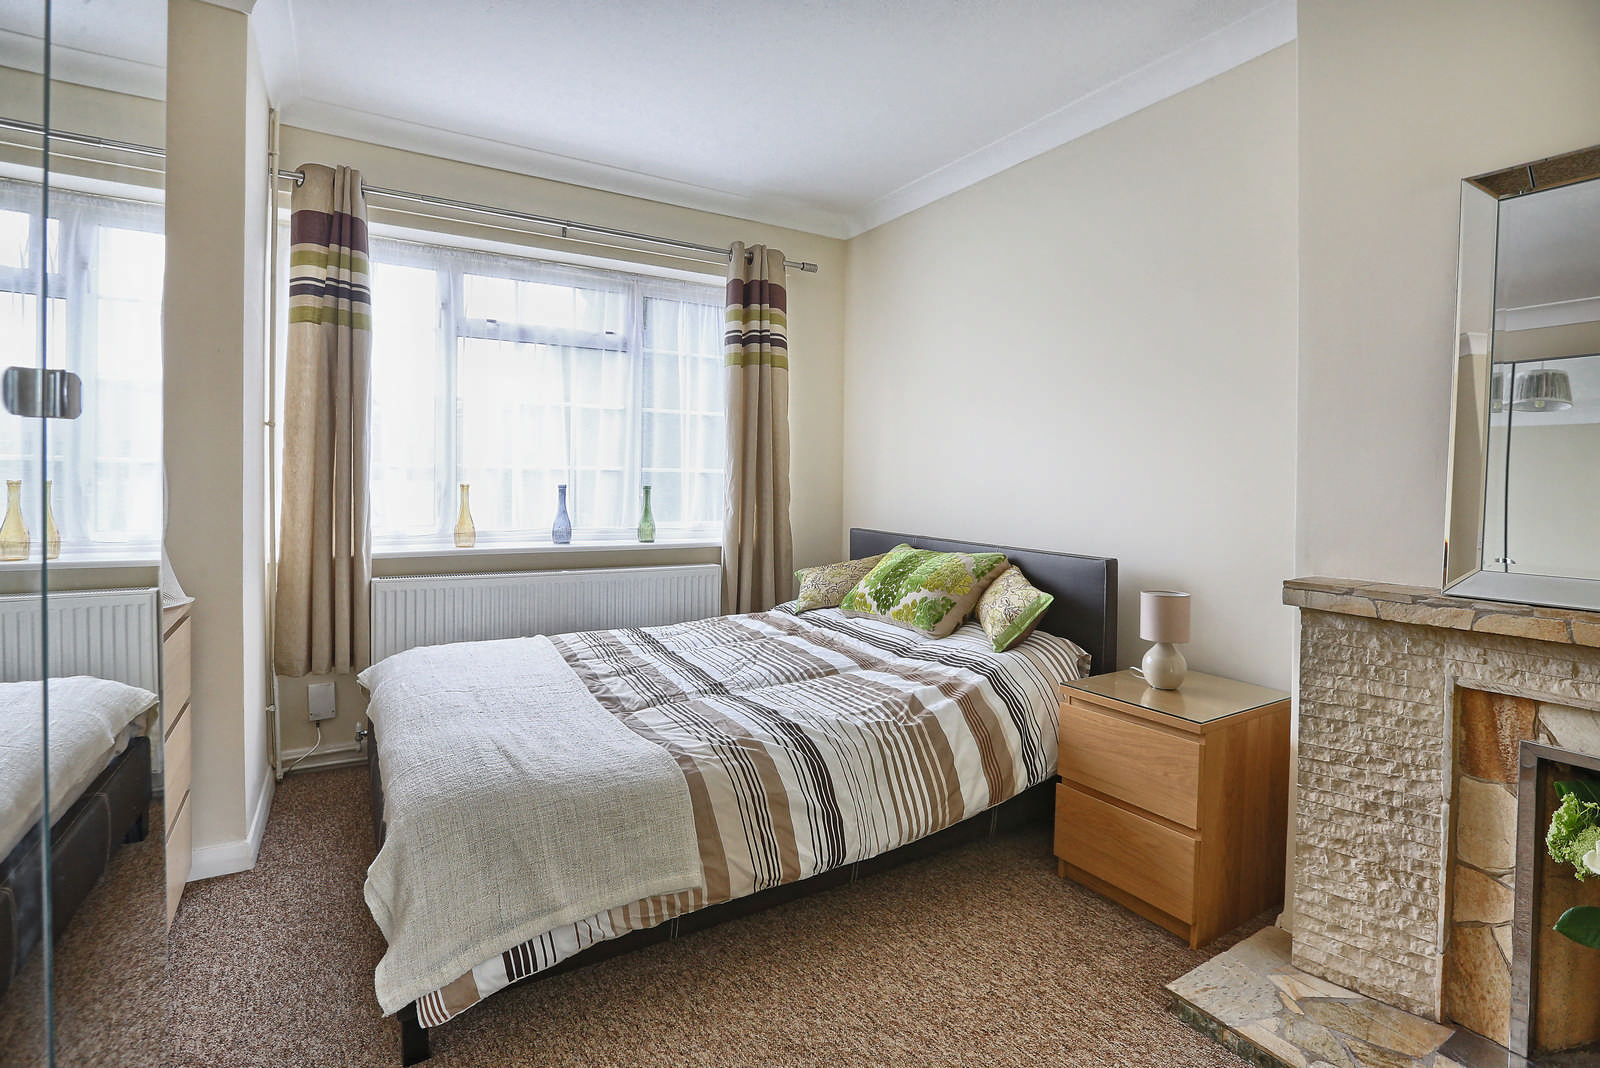 Estate Agency: FrontRoom06